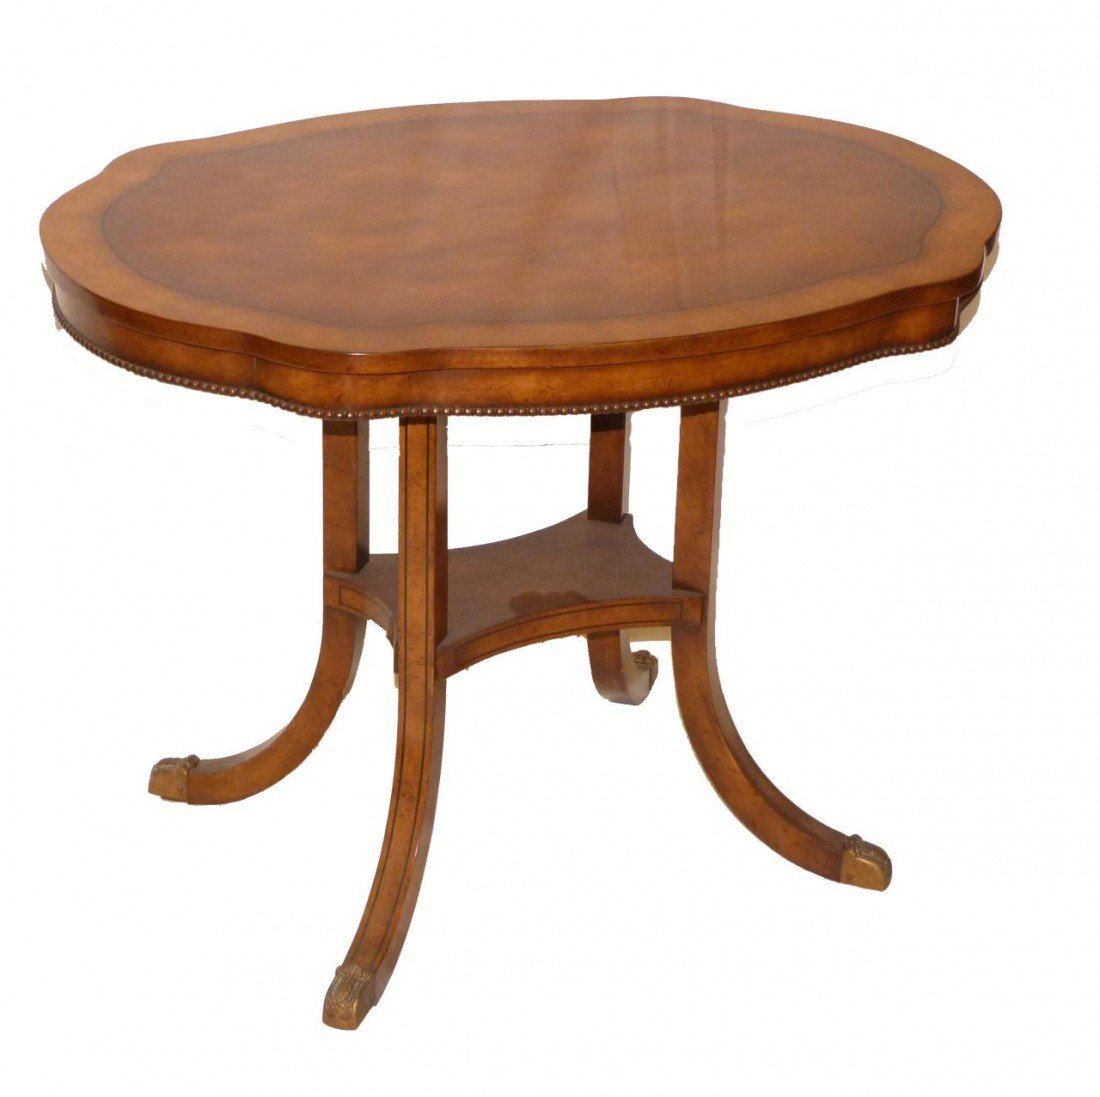 3: ANTIQUE AMERICAN OVAL INLAY END TABLE